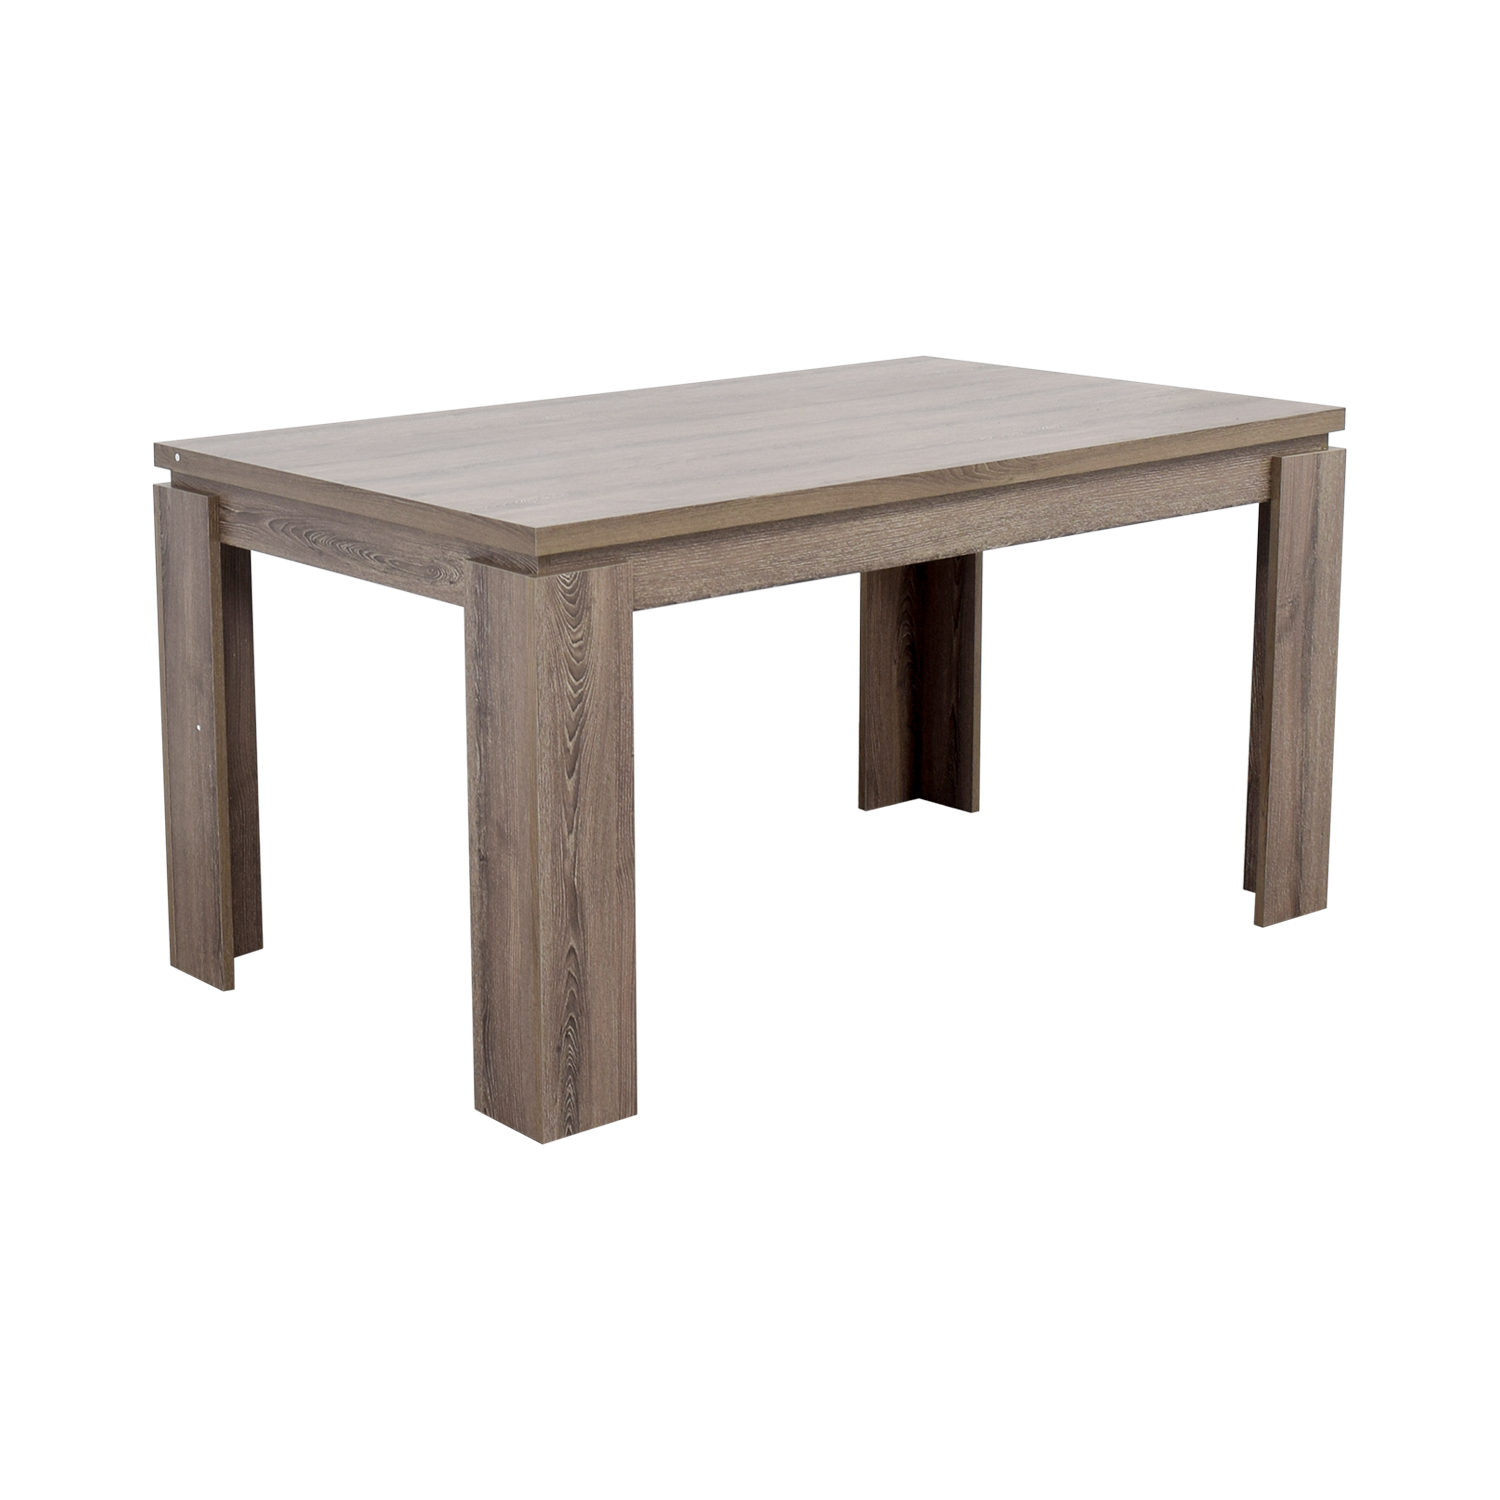 WilliamBrugman Rustic Grey Table WilliamBrugman